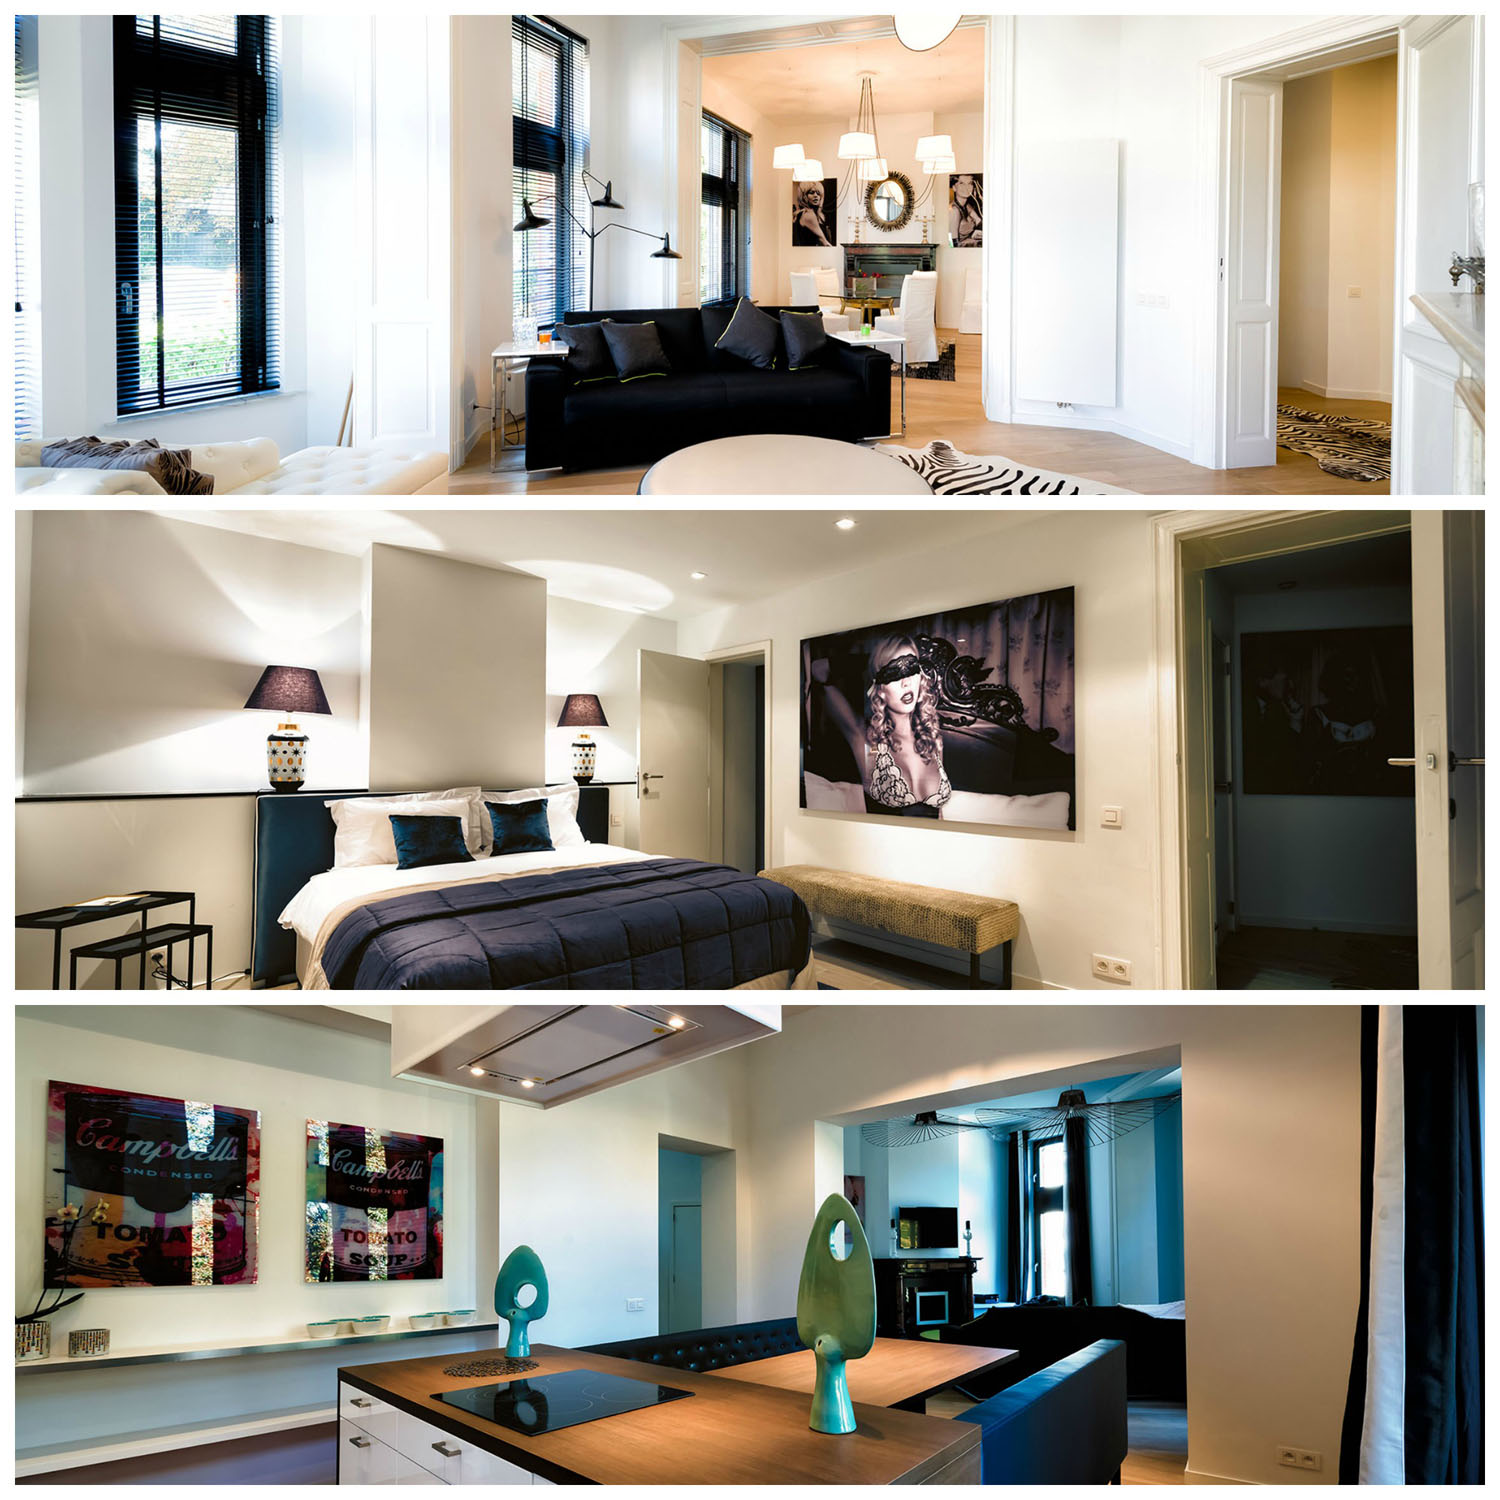 Apparthotel bruxelles for Appart hotel amsterdam centre ville